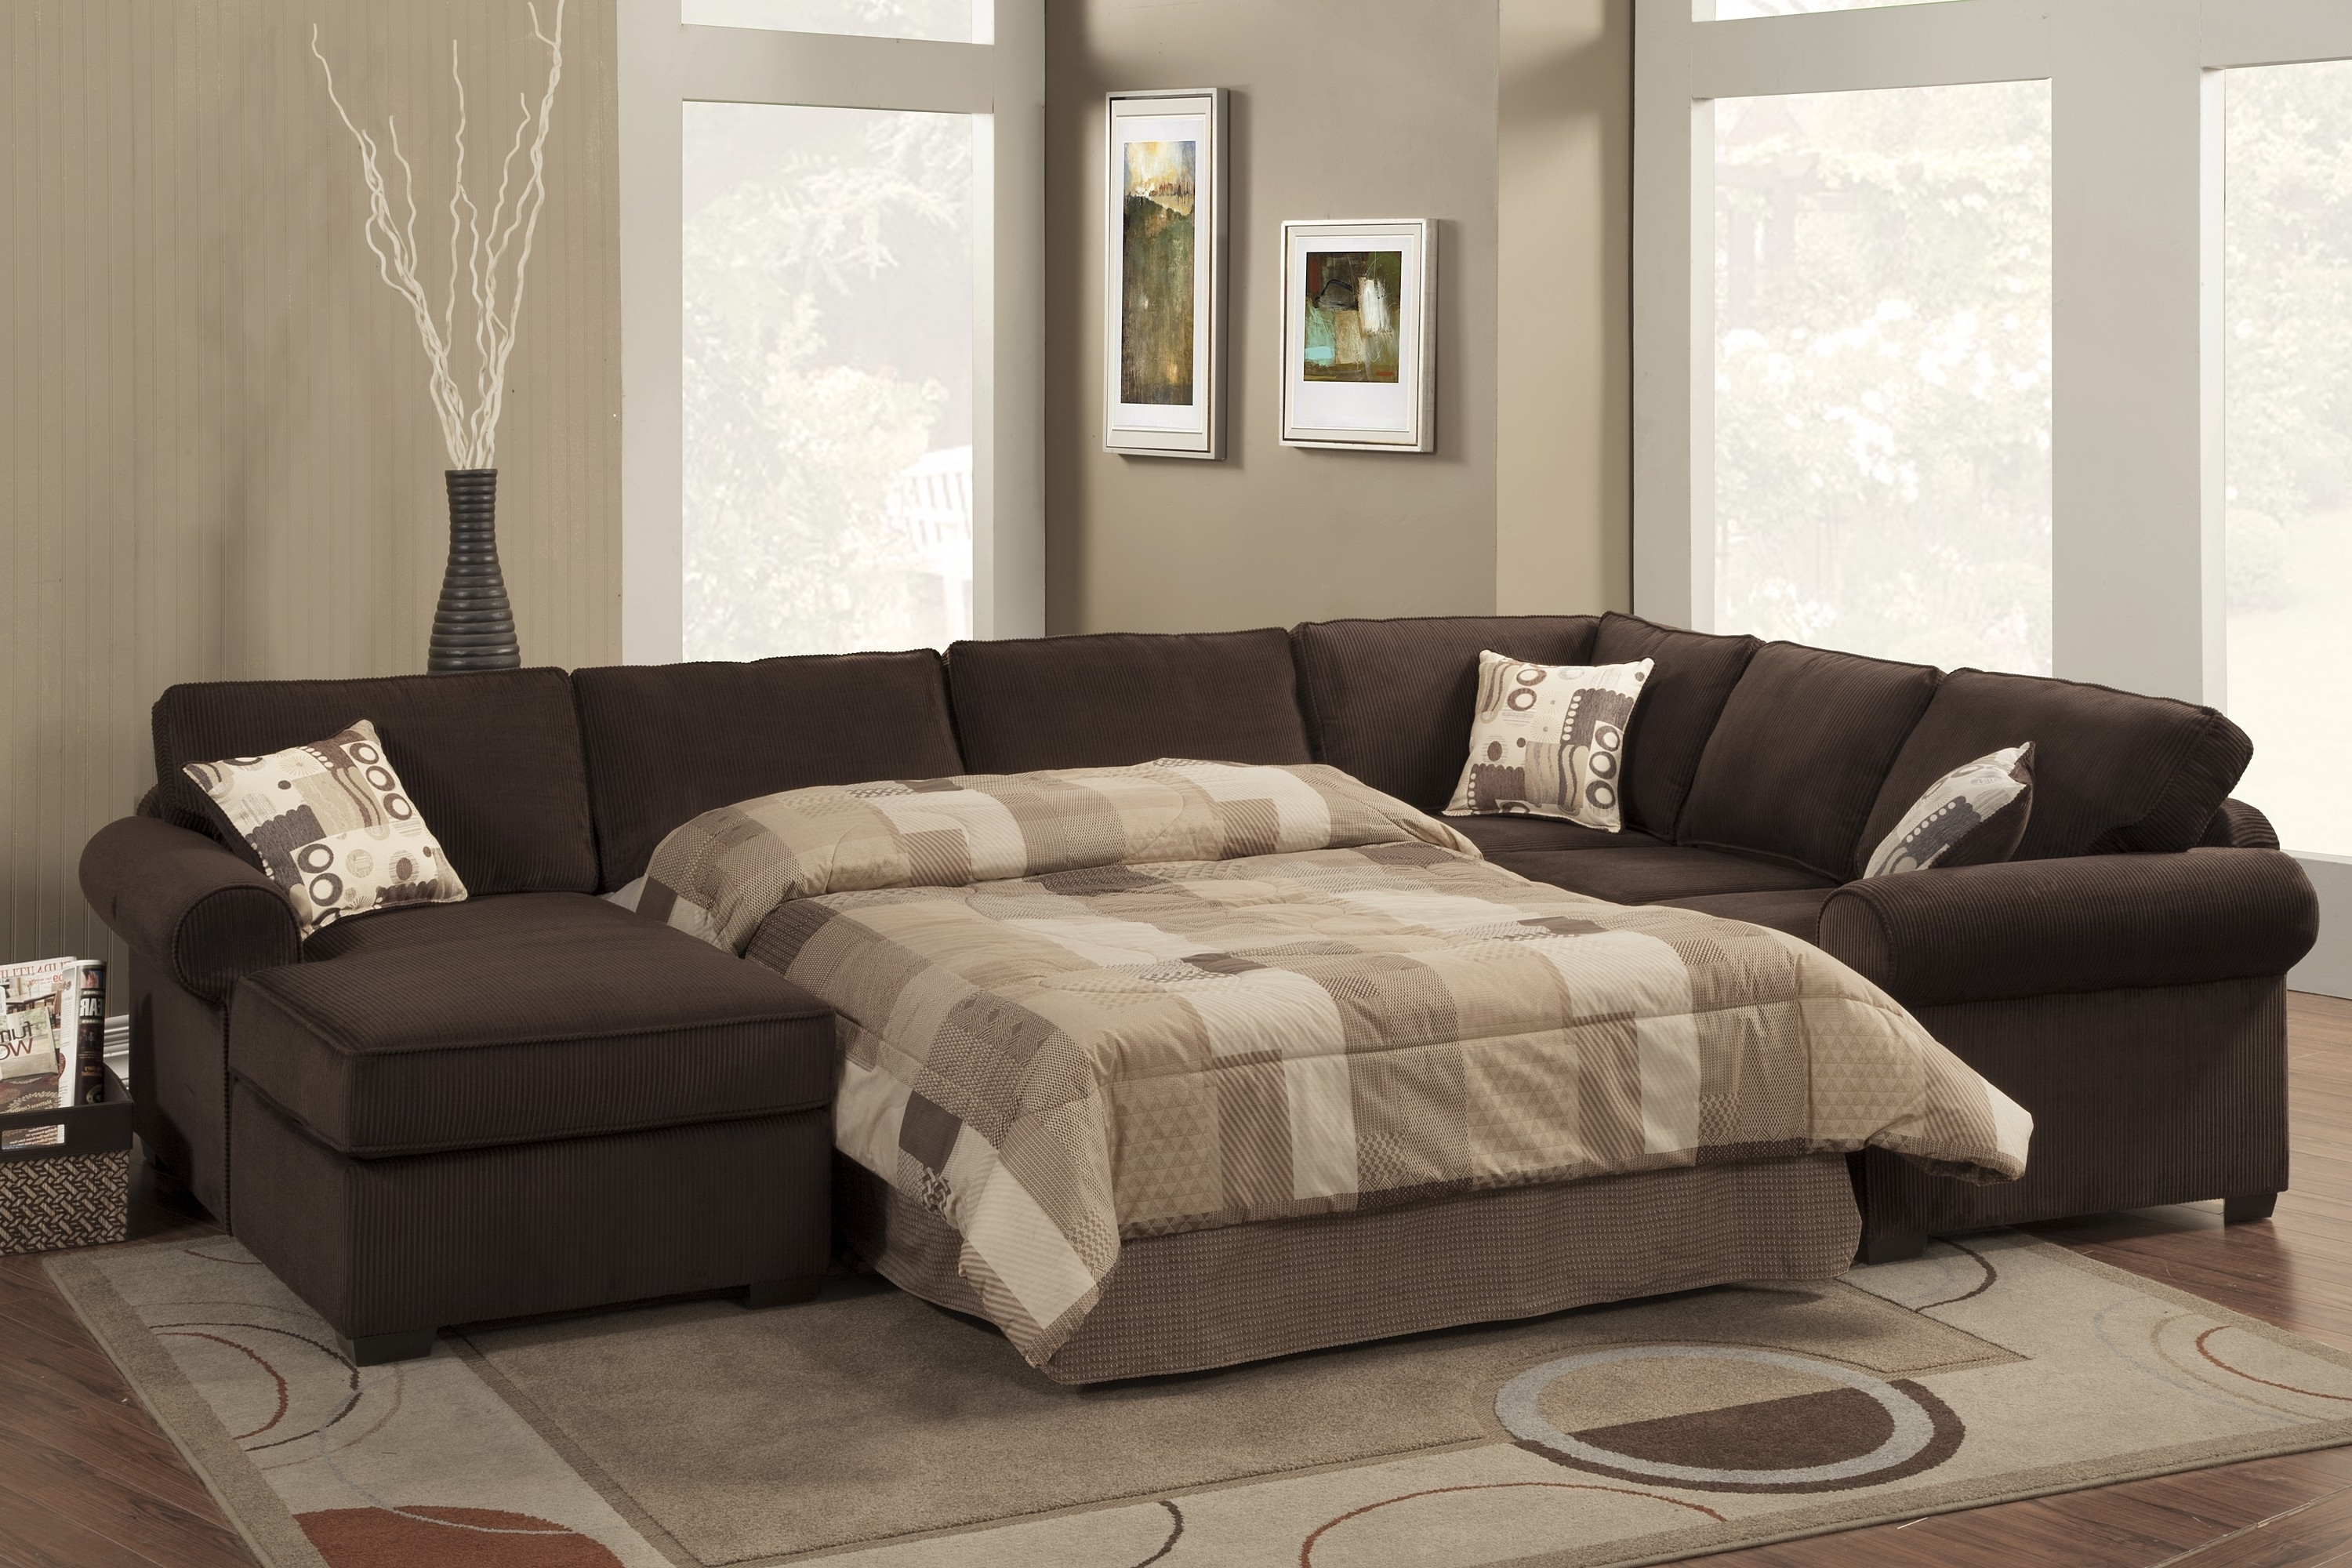 Extraordinary Sleeper Sofa Sectional Alluring Home Design Inside 2019 Sectional Sofas With Queen Size Sleeper (Gallery 7 of 20)